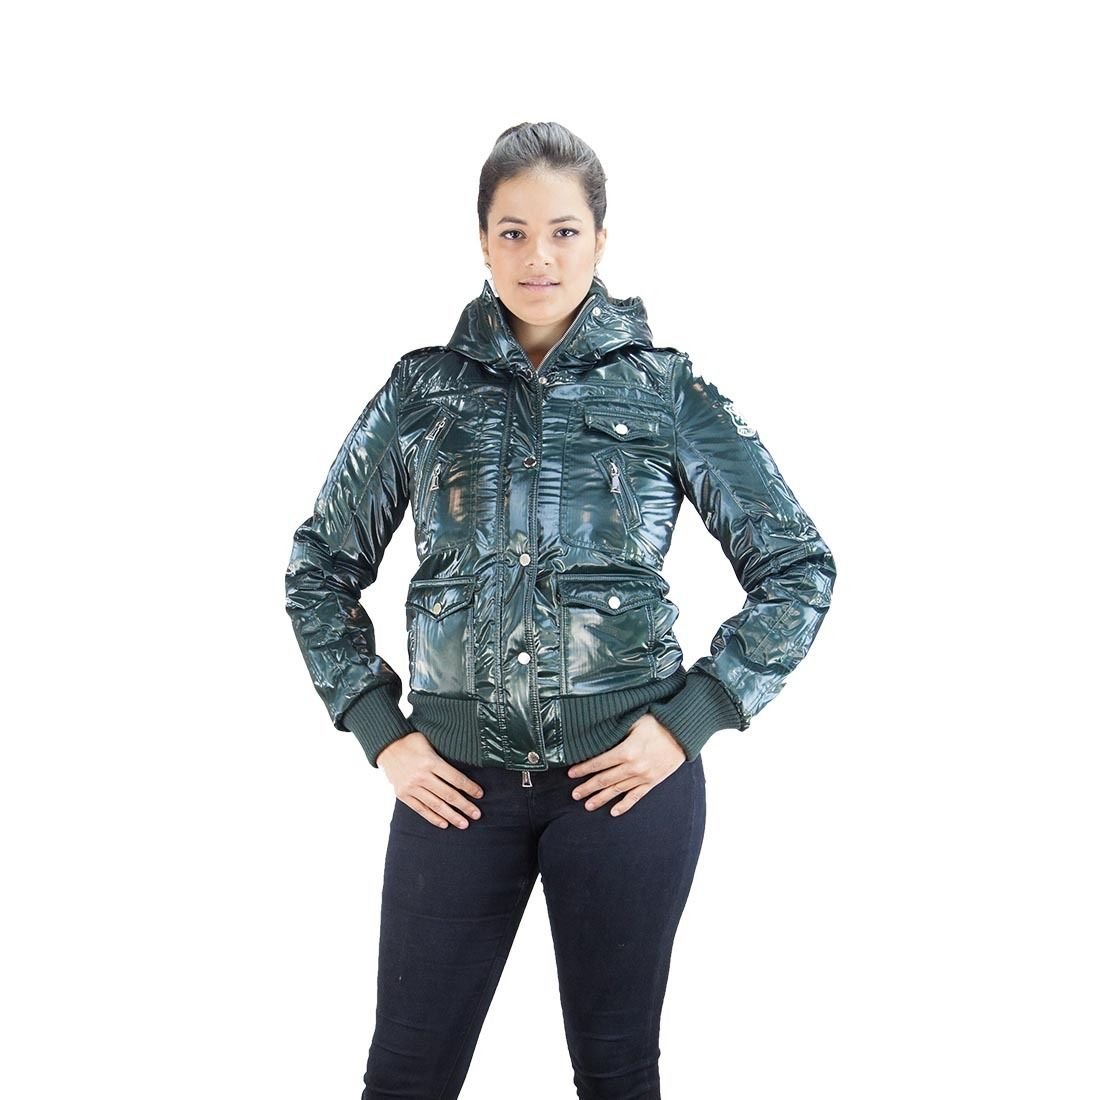 Williams Wilson Arlene Verde Forest Green Padded Women's Bomber/Hoodie Jacket